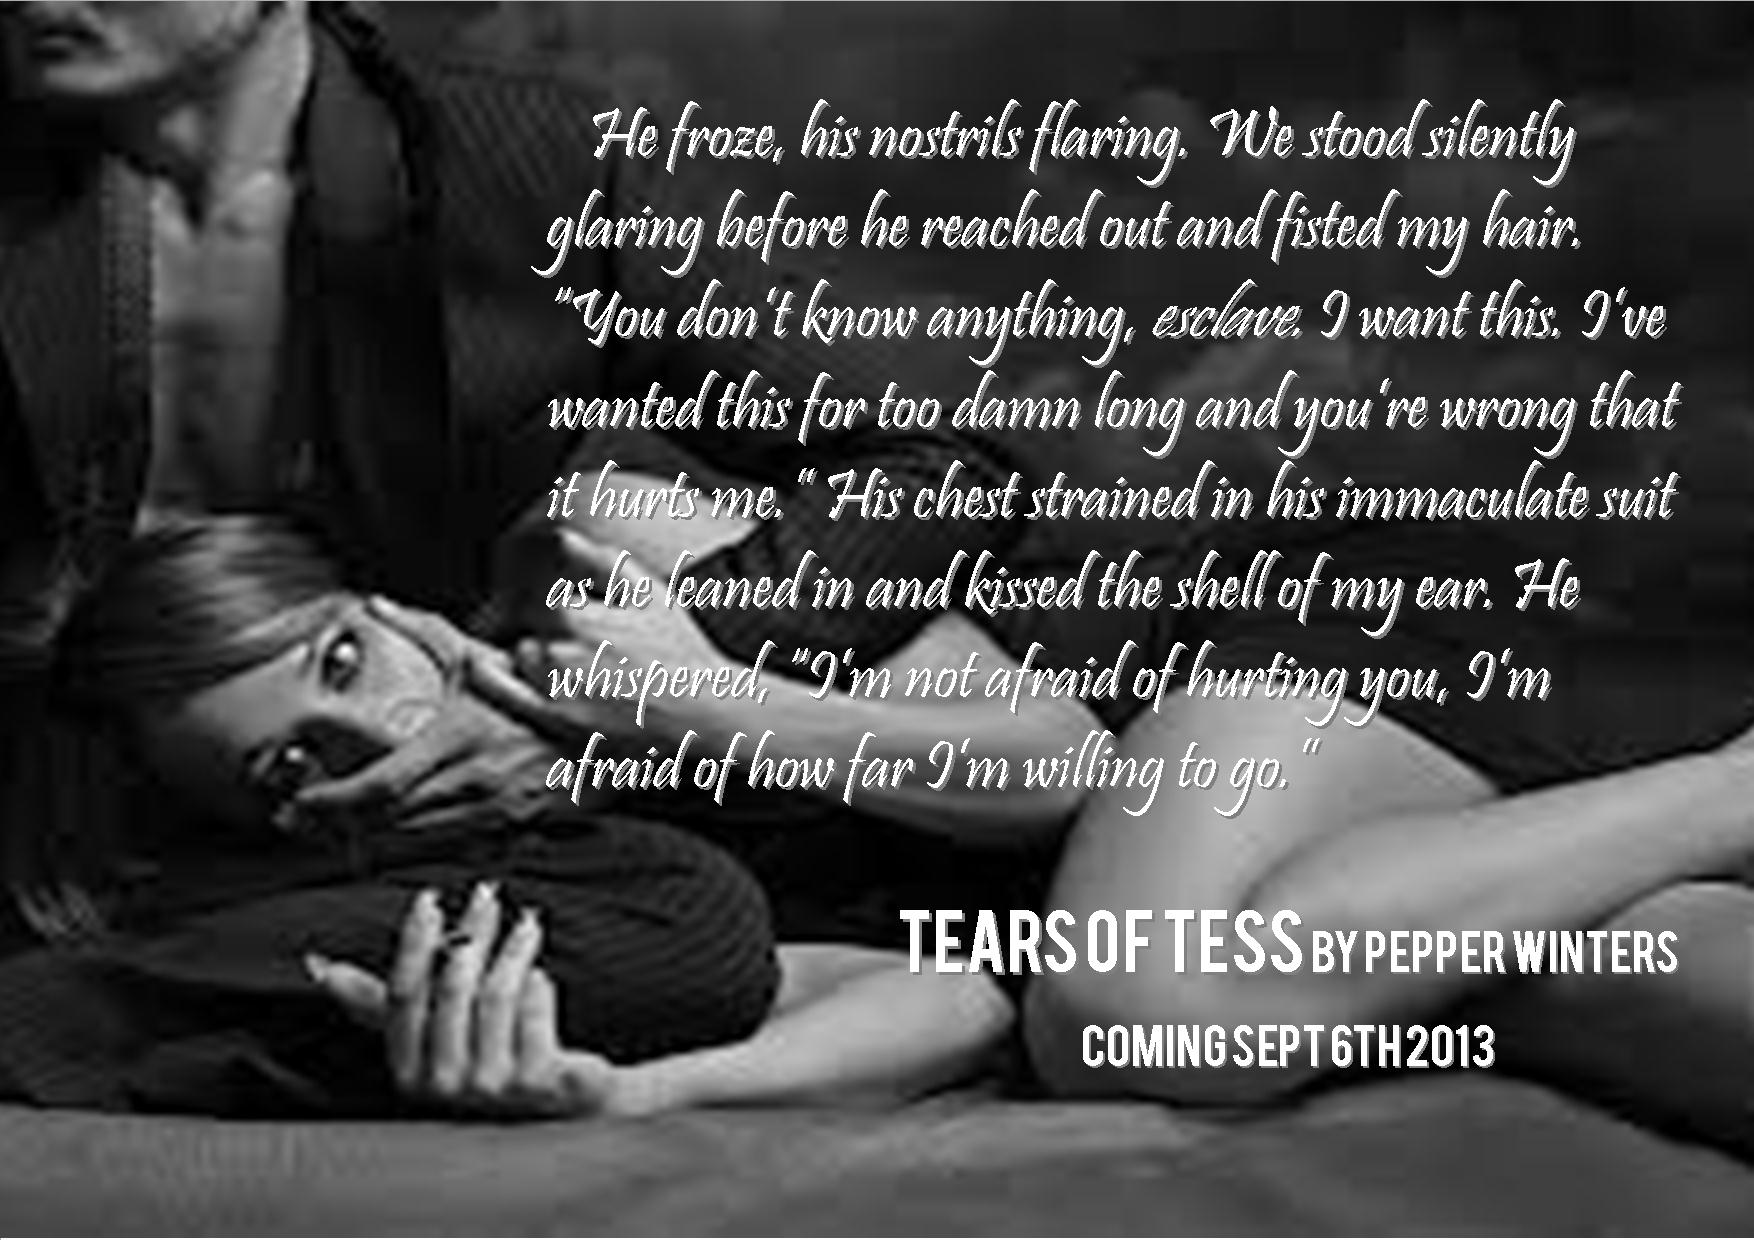 tears of tess excerpt pic